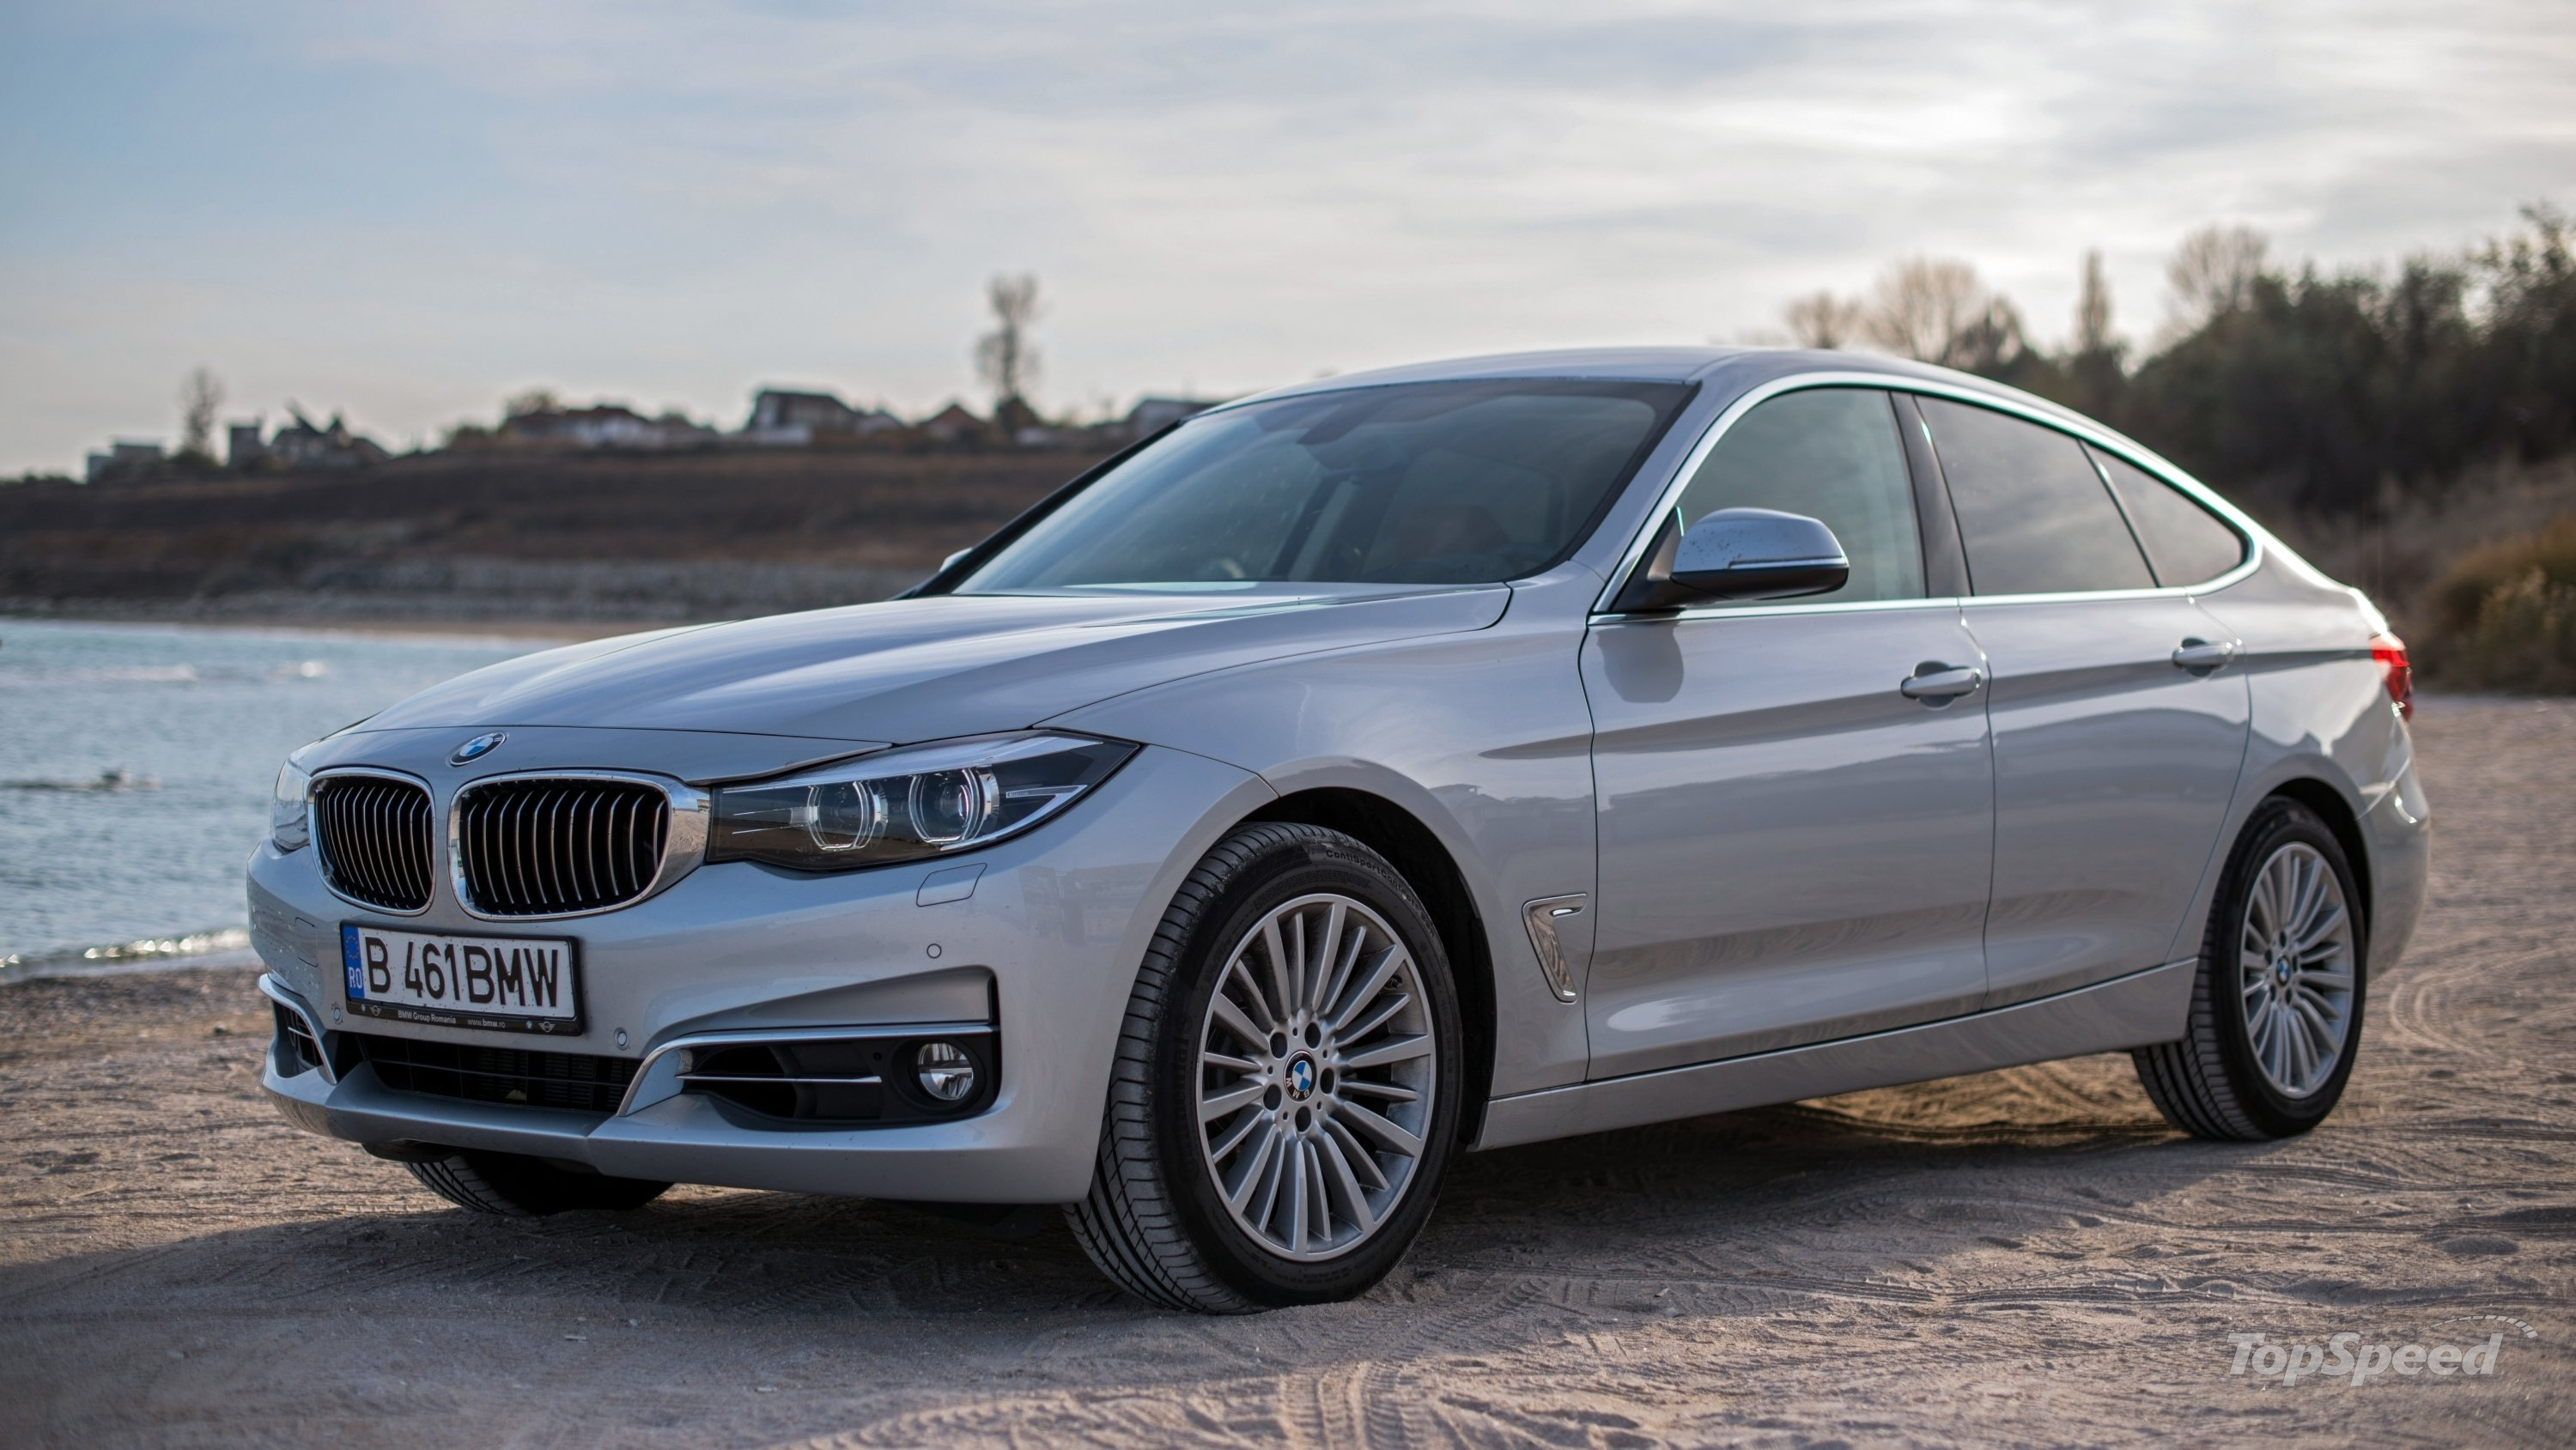 2018 bmw 330i gt xdr 71 besides  moreover sony hvr z5 ver1 3 pdf 1 also  besides  as well  as well repair guides fuel systems 2002 of 2005 gmc w4500 wiring diagram moreover 299969 4 En 22 Fig7 HTML besides  furthermore 32712 frt in addition . on e fuse diagram explained wiring diagrams f box schematic dash ford super duty diy parts trusted steering with description